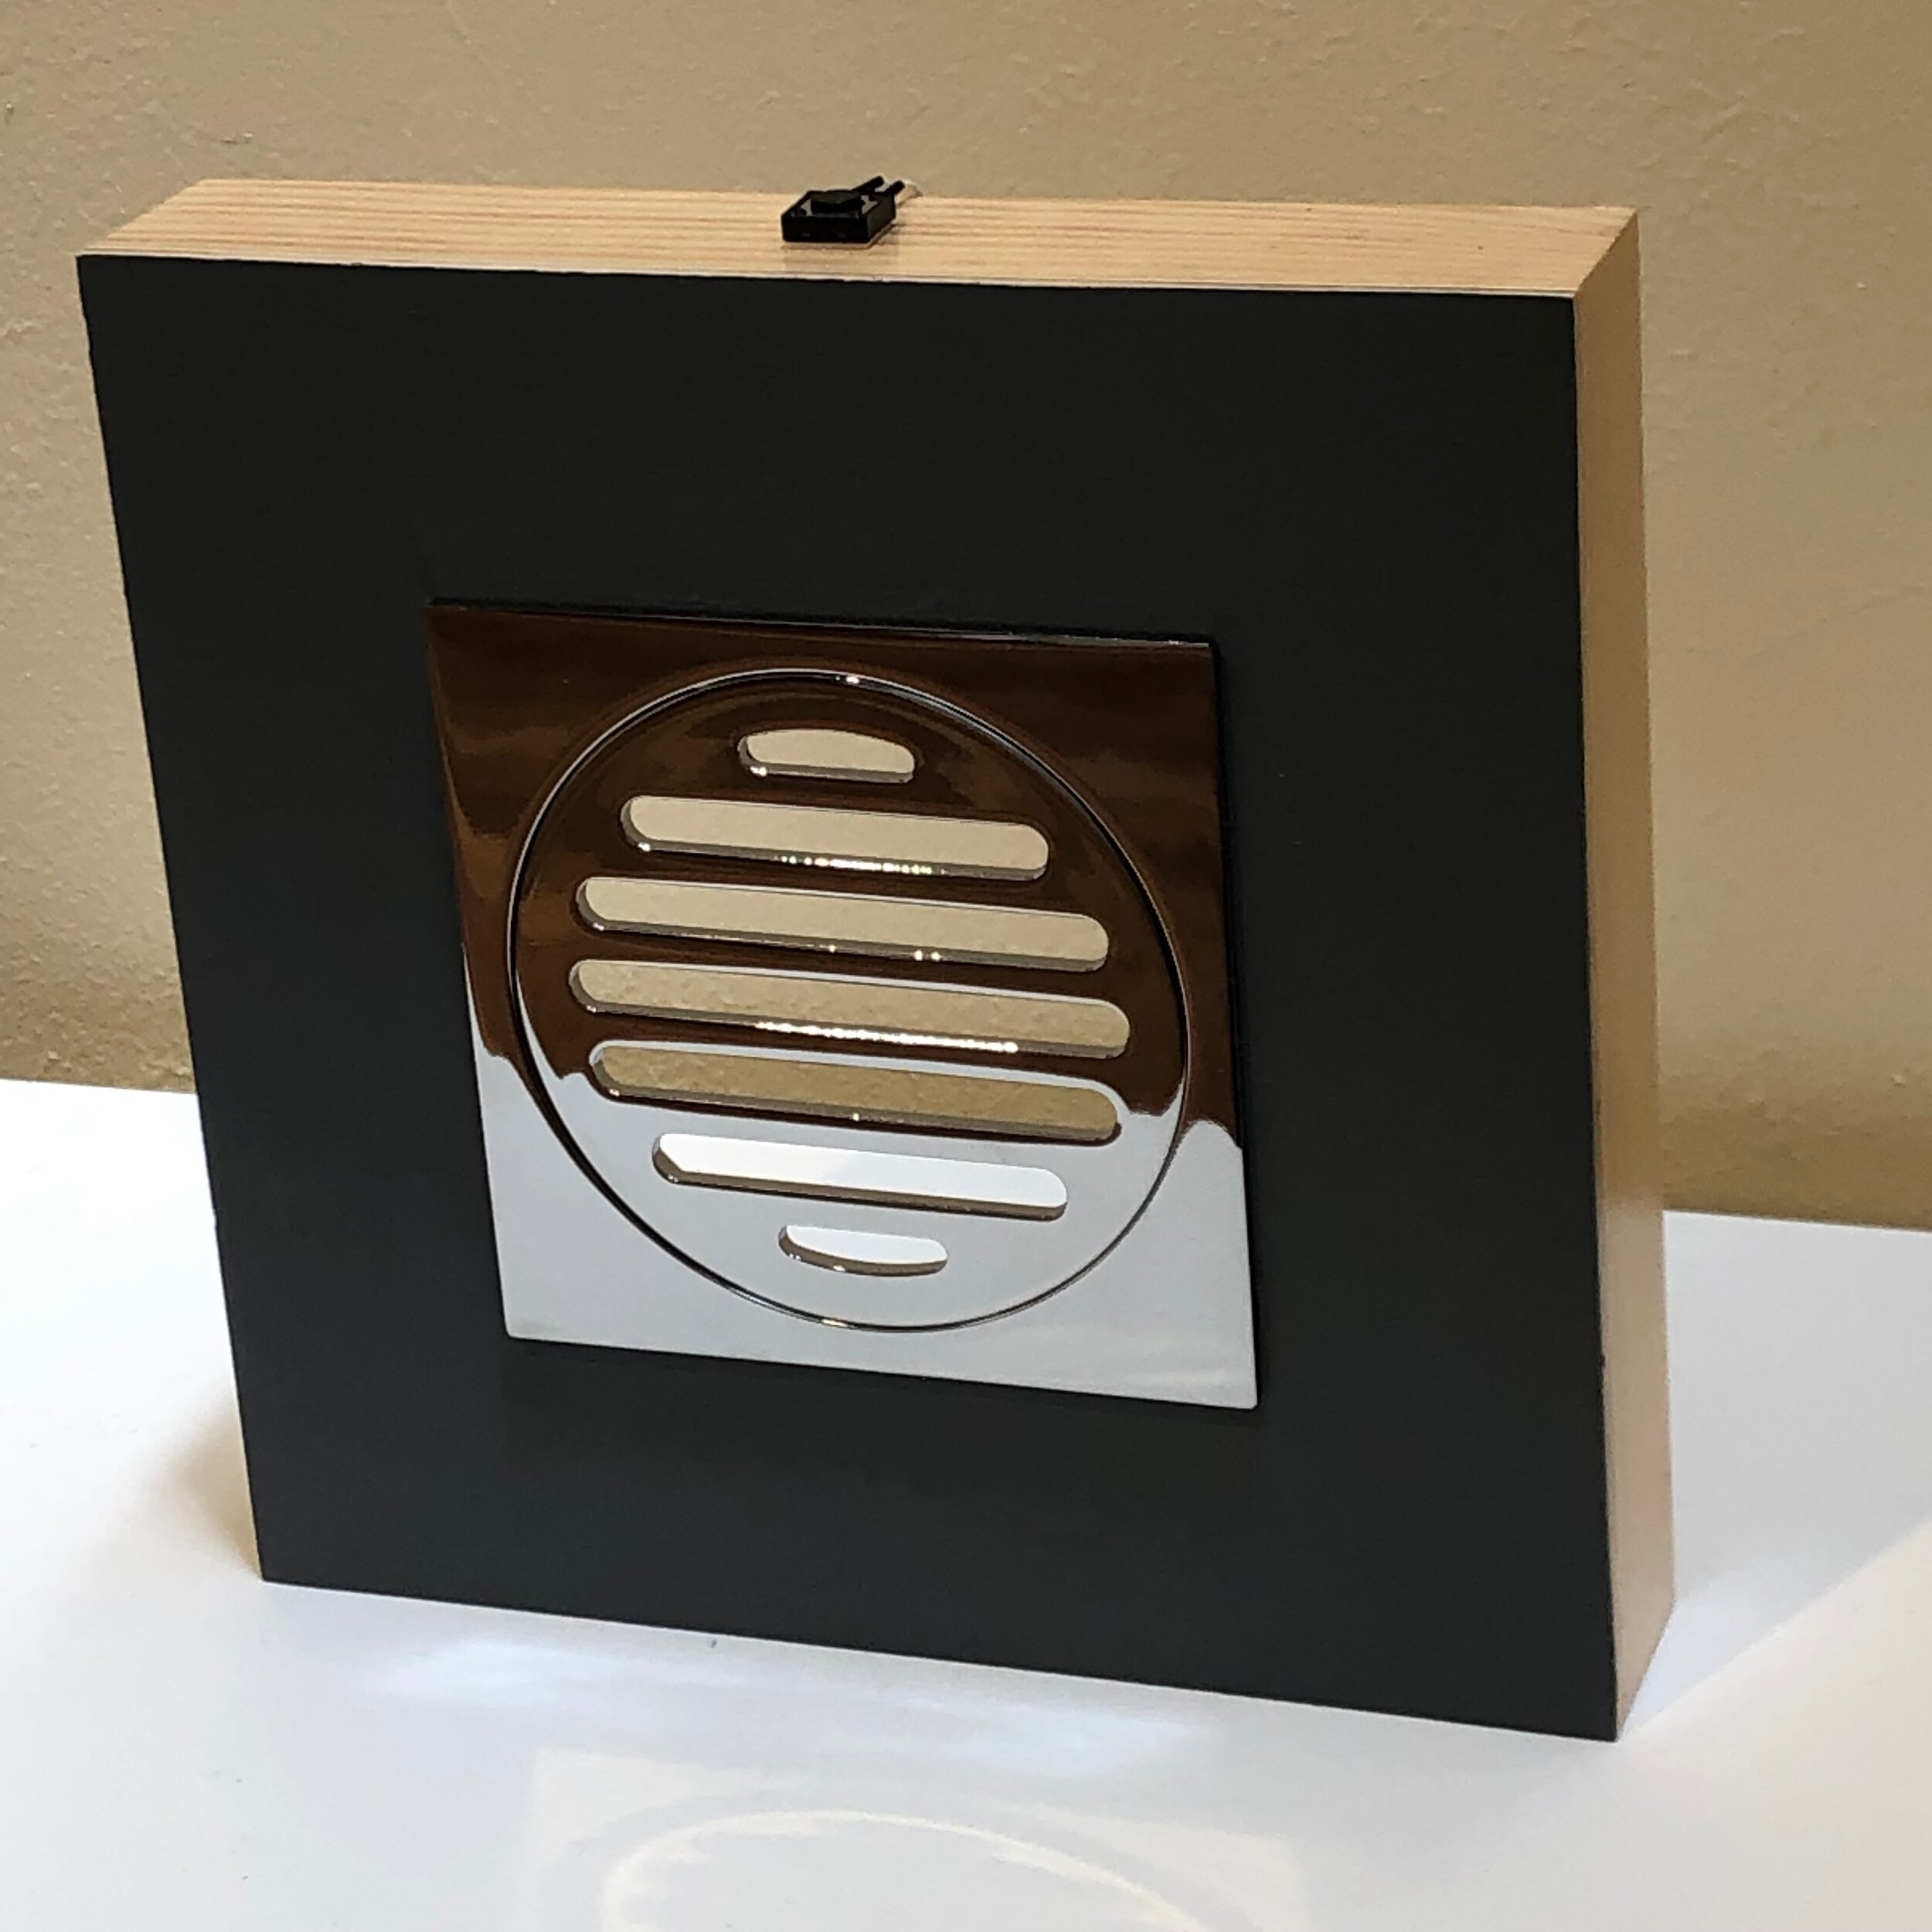 Tom Loveday,  Monochrome 1 , 2018, Acrylic on board and chrome floor vent, recorded sound, 20 x 20 x 3.5 cm, assemblage